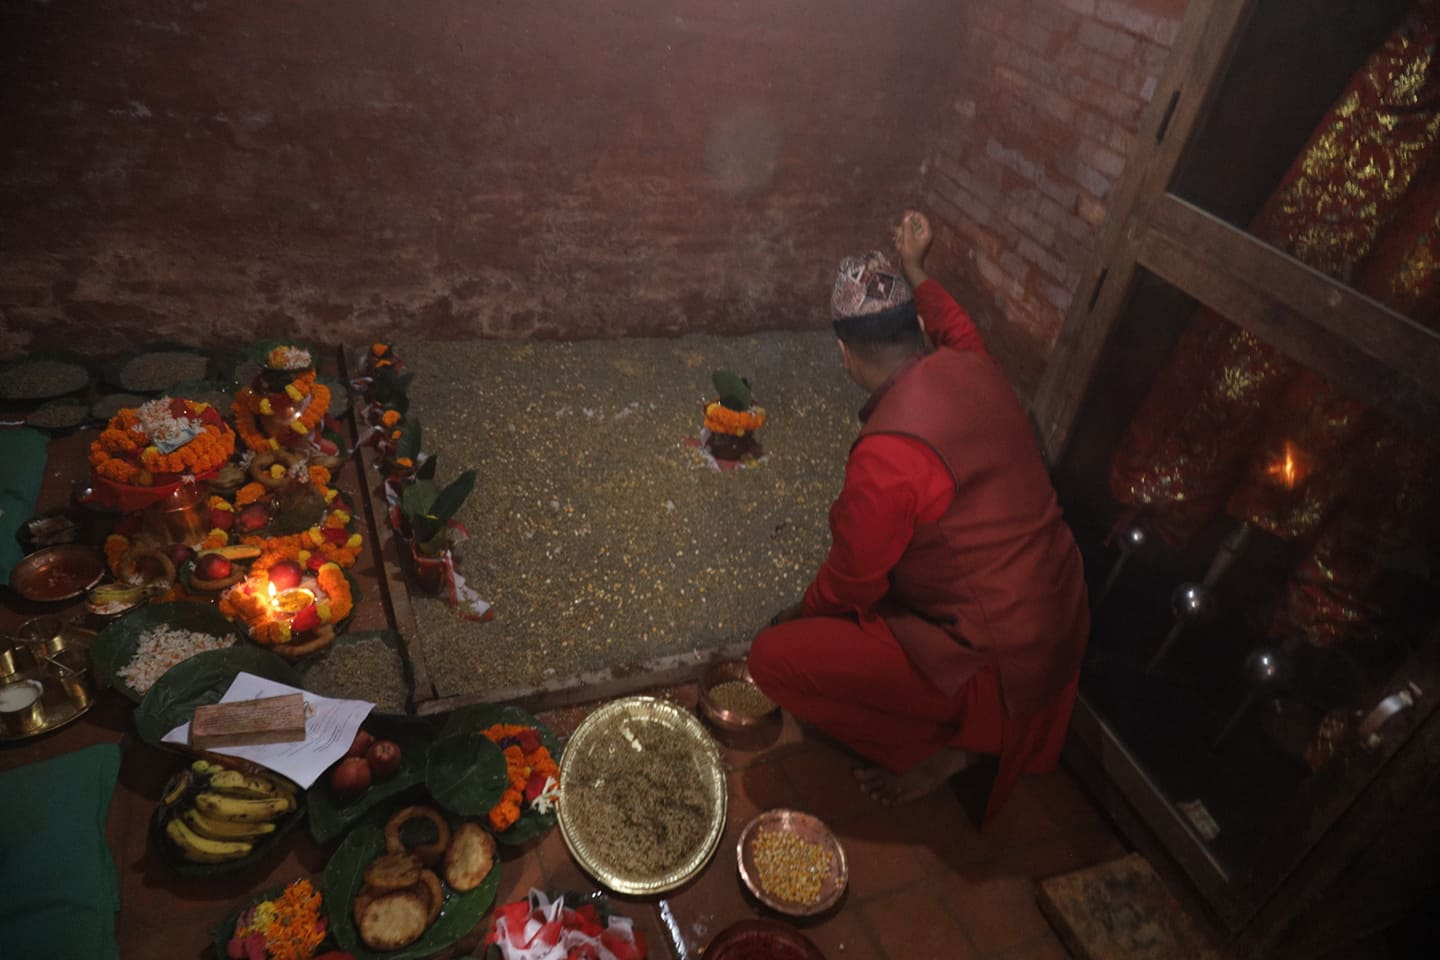 Jamara, barley seeds are sowed amidst a special ceremony at the Dasain Ghar in Hanuman Dhoka during Ghatasthapana on Thursday, marking the start of Dasain.